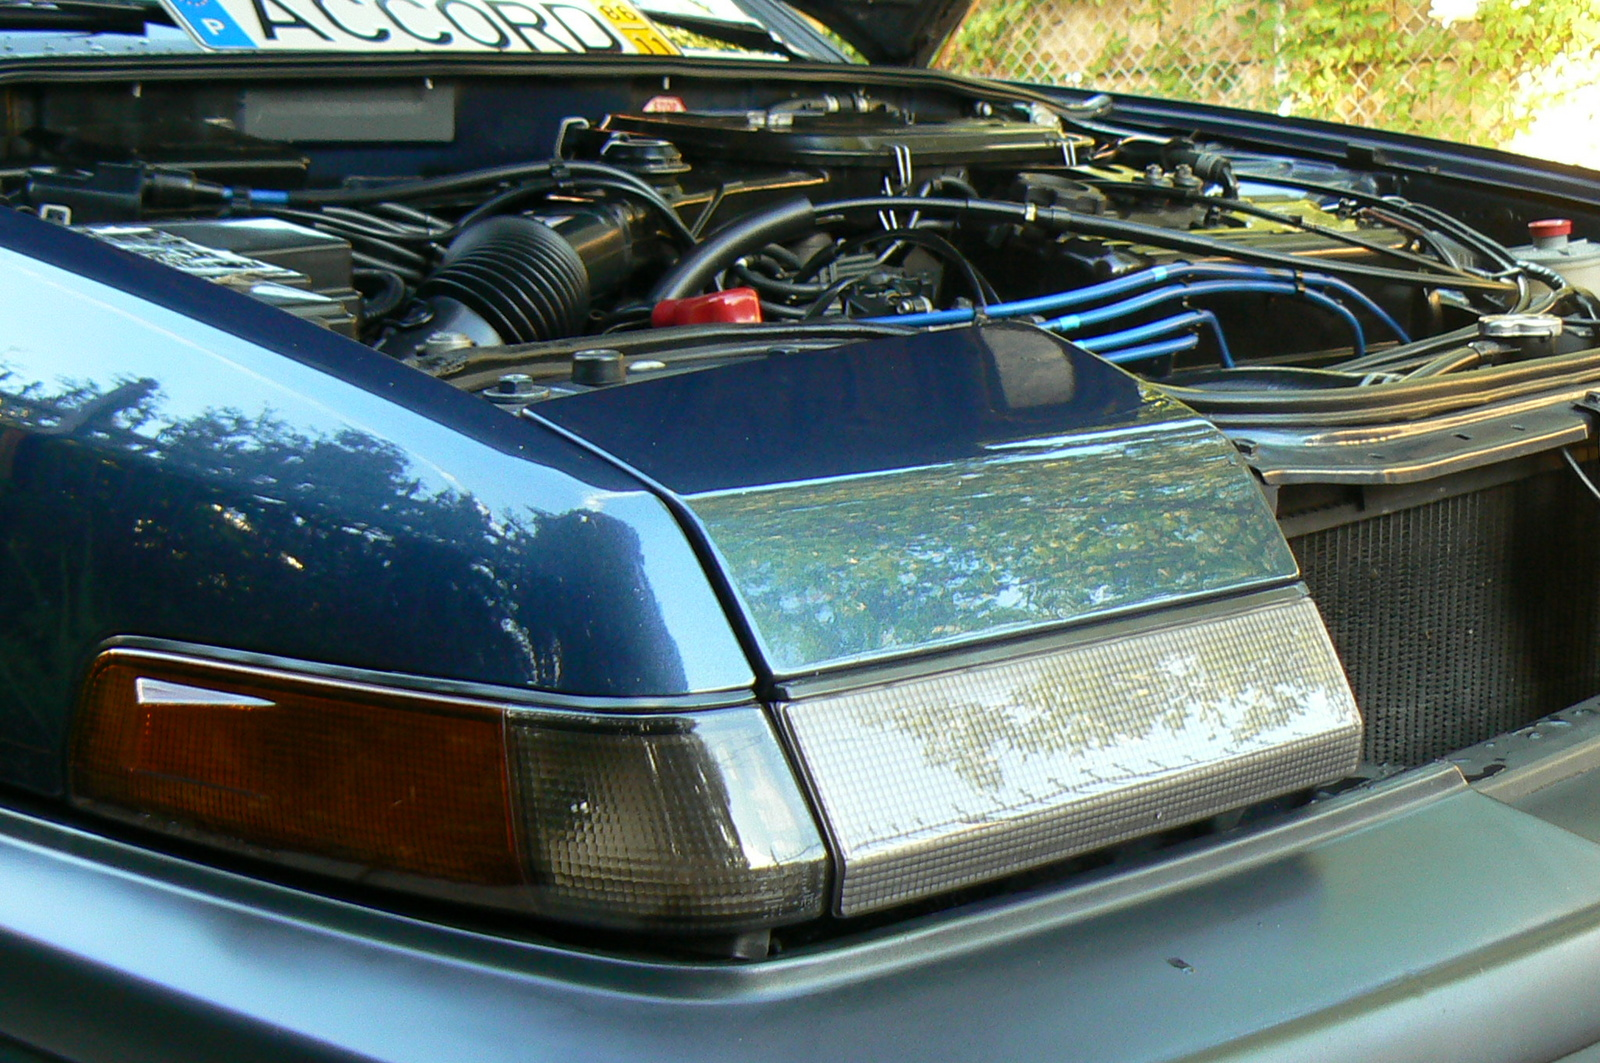 1987 Honda Accord Lxi, 1987 Honda Accord Sedan Lxi picture, exterior